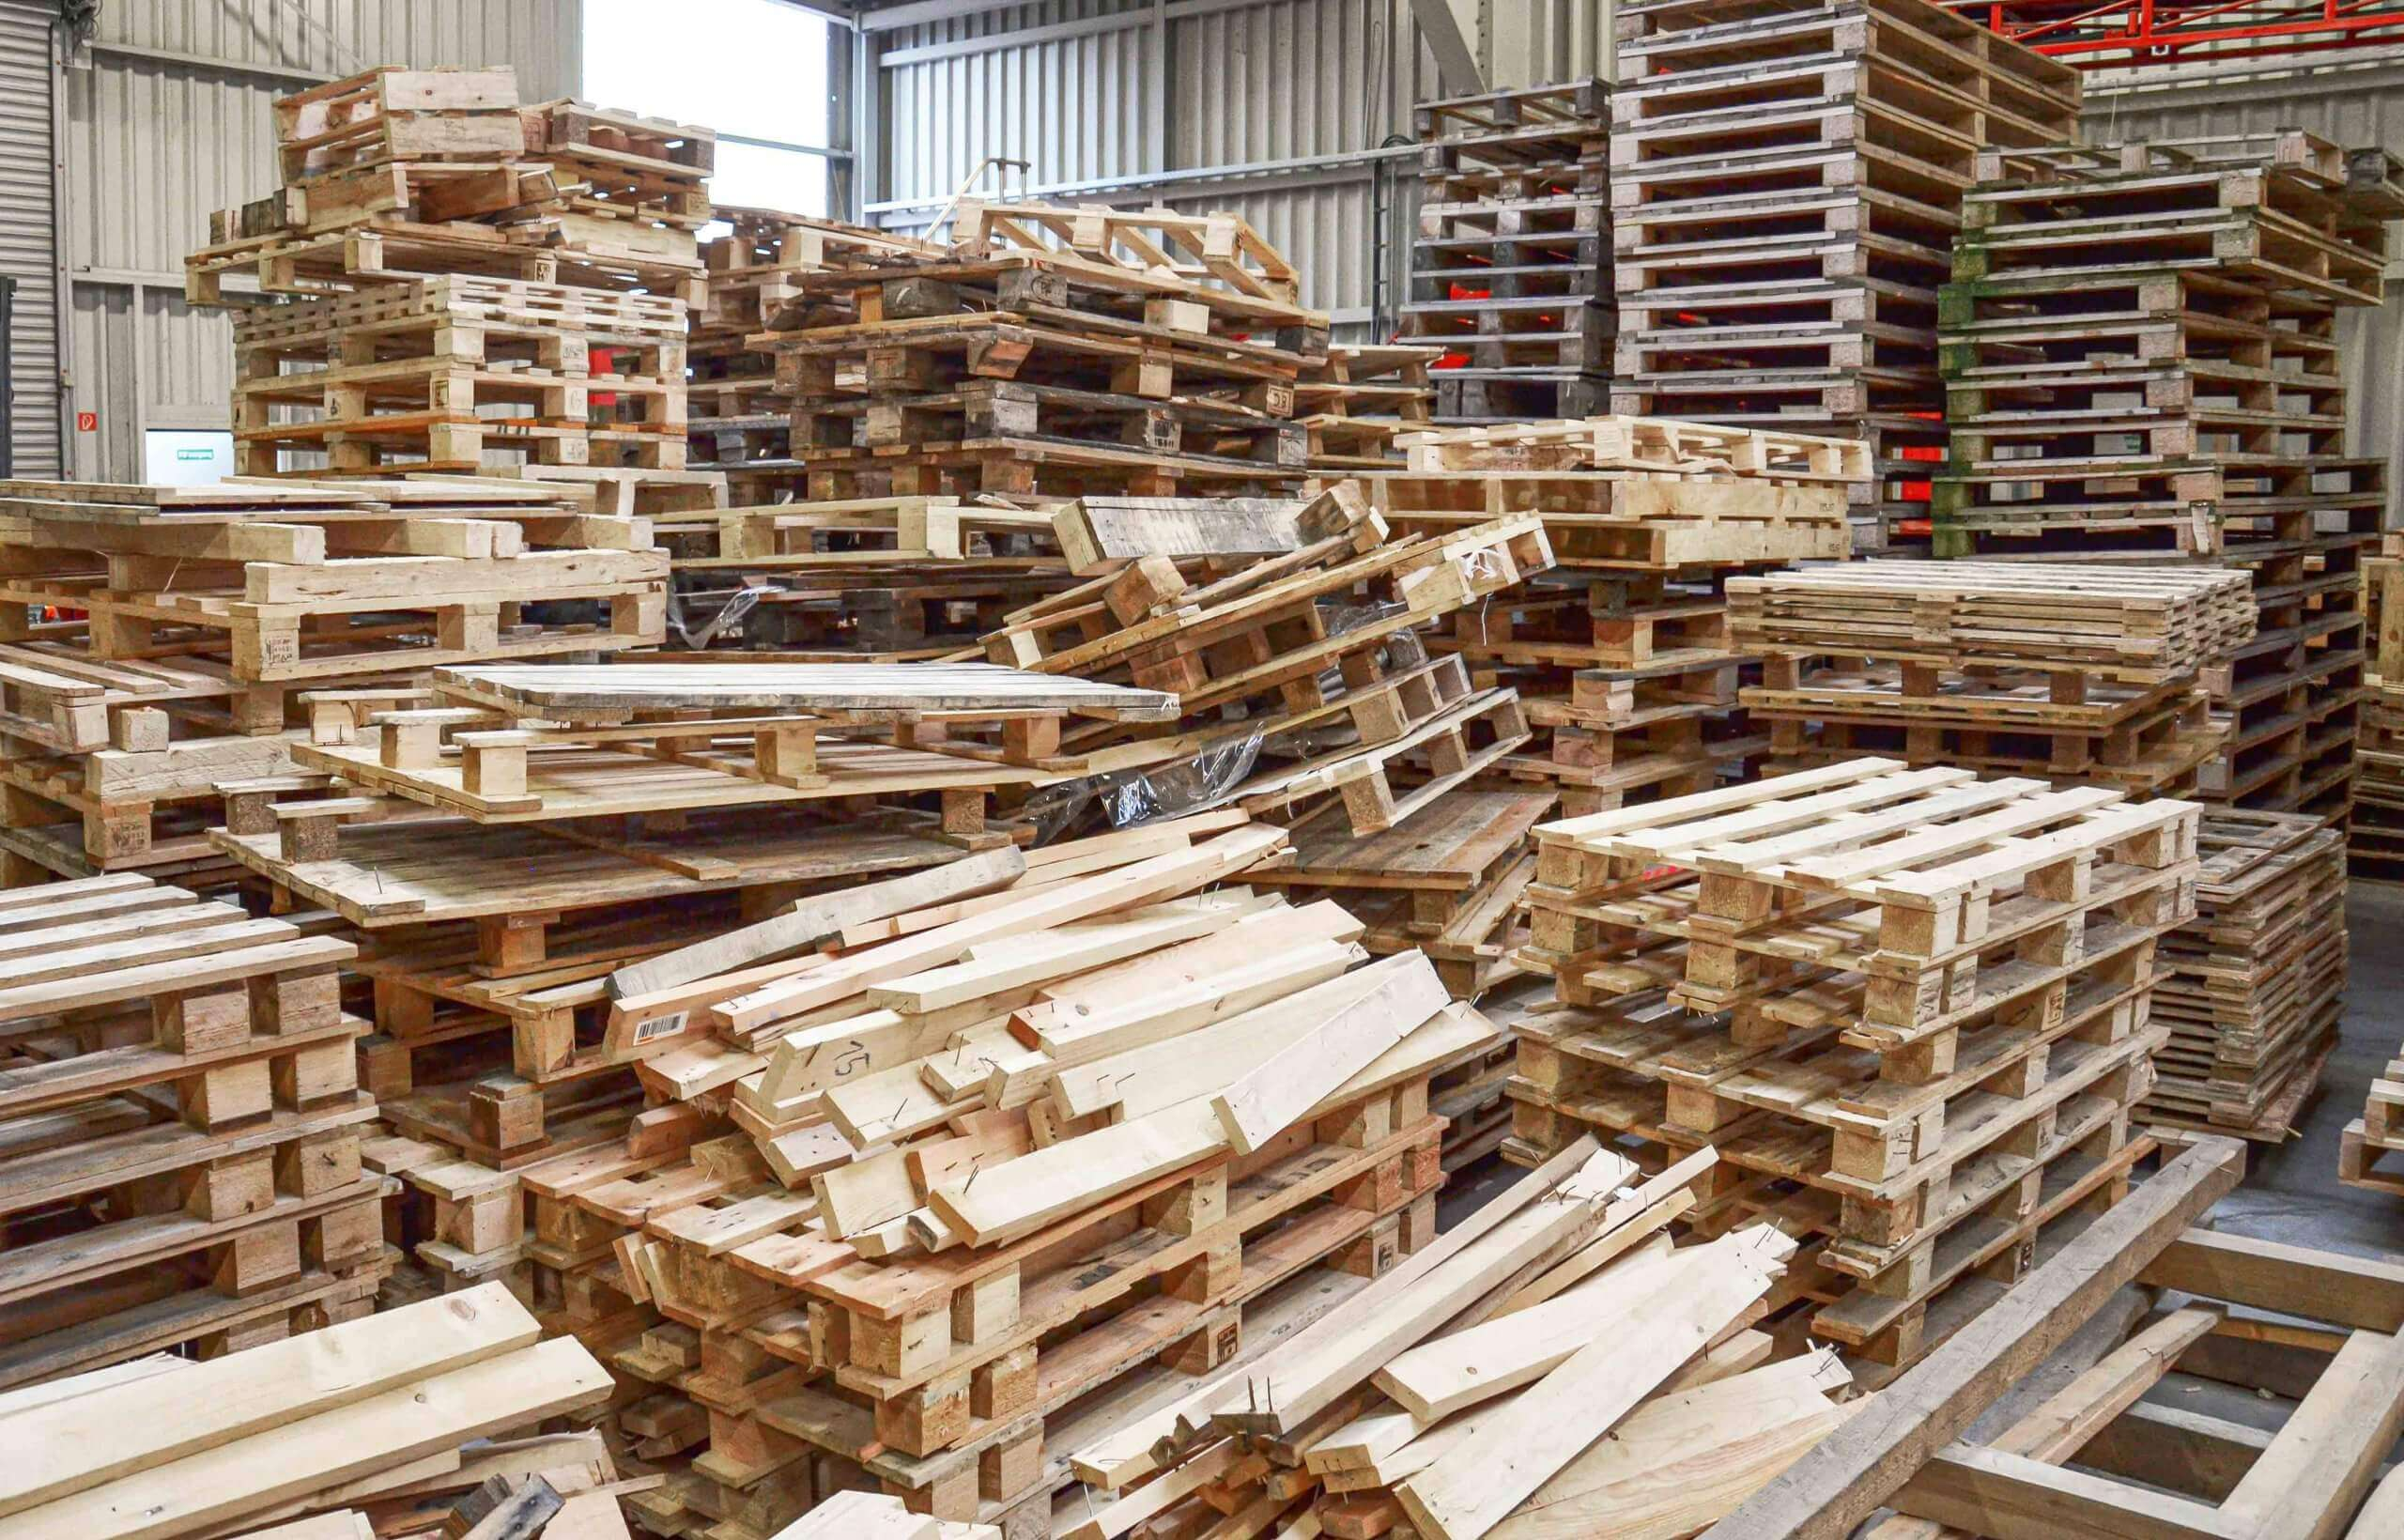 Stacks with old wooden pallets